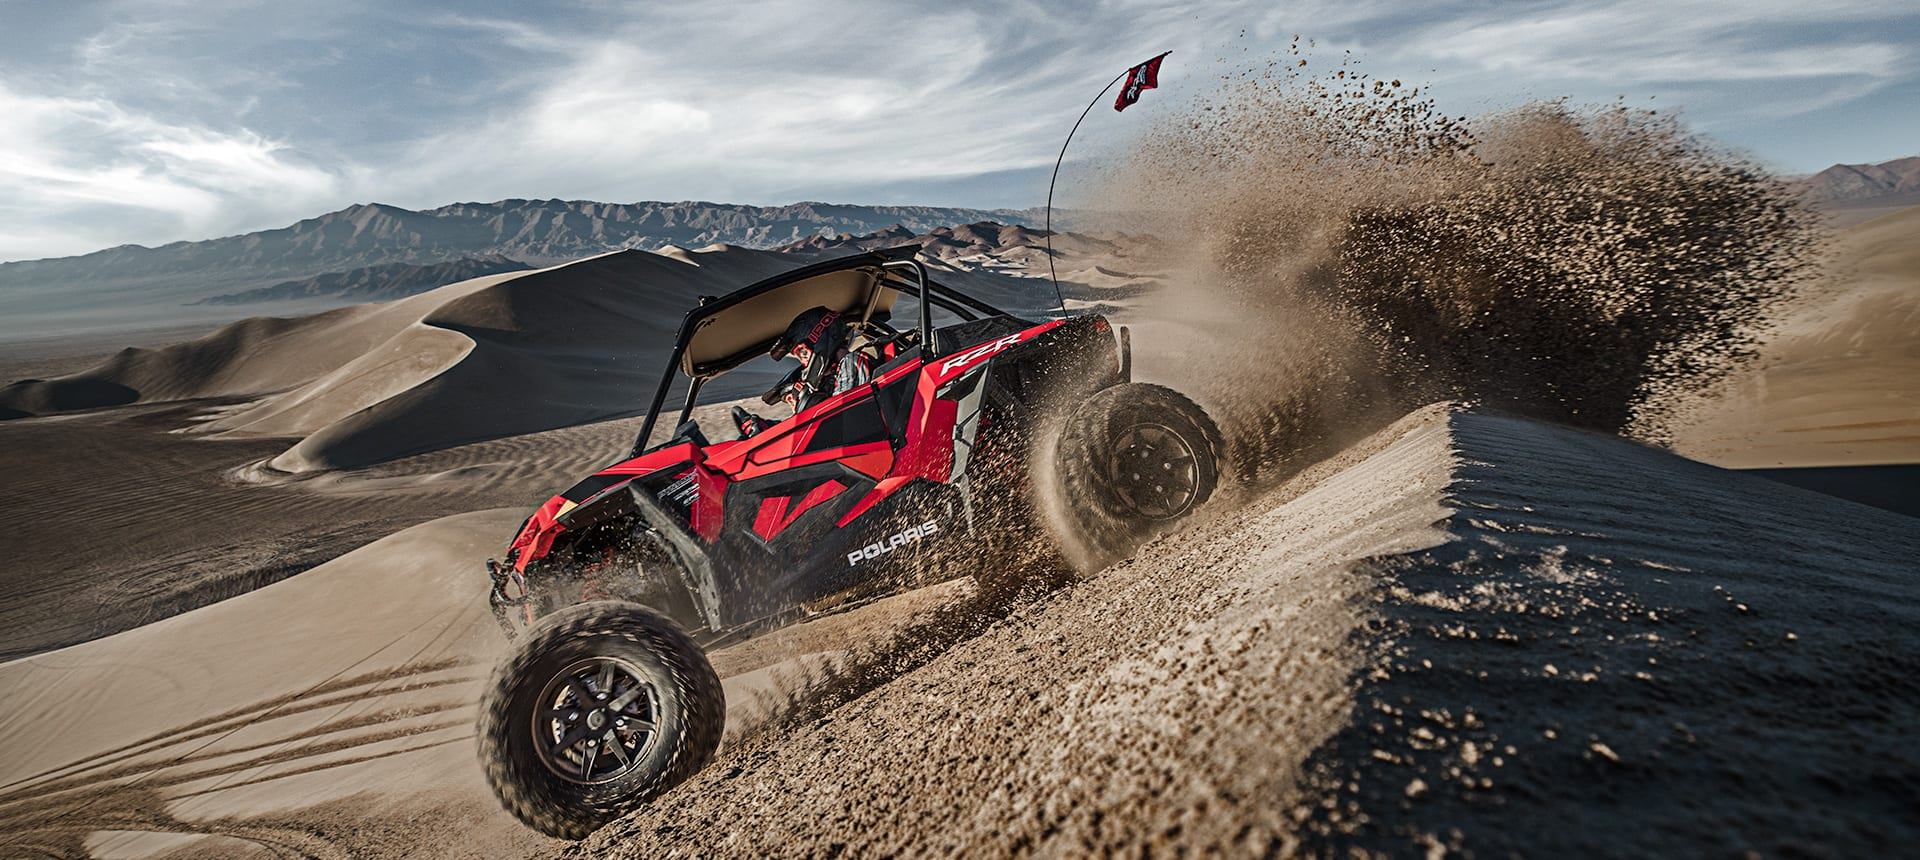 RZR XP TOURBO S EXTREME OFFROAD VEHICLE